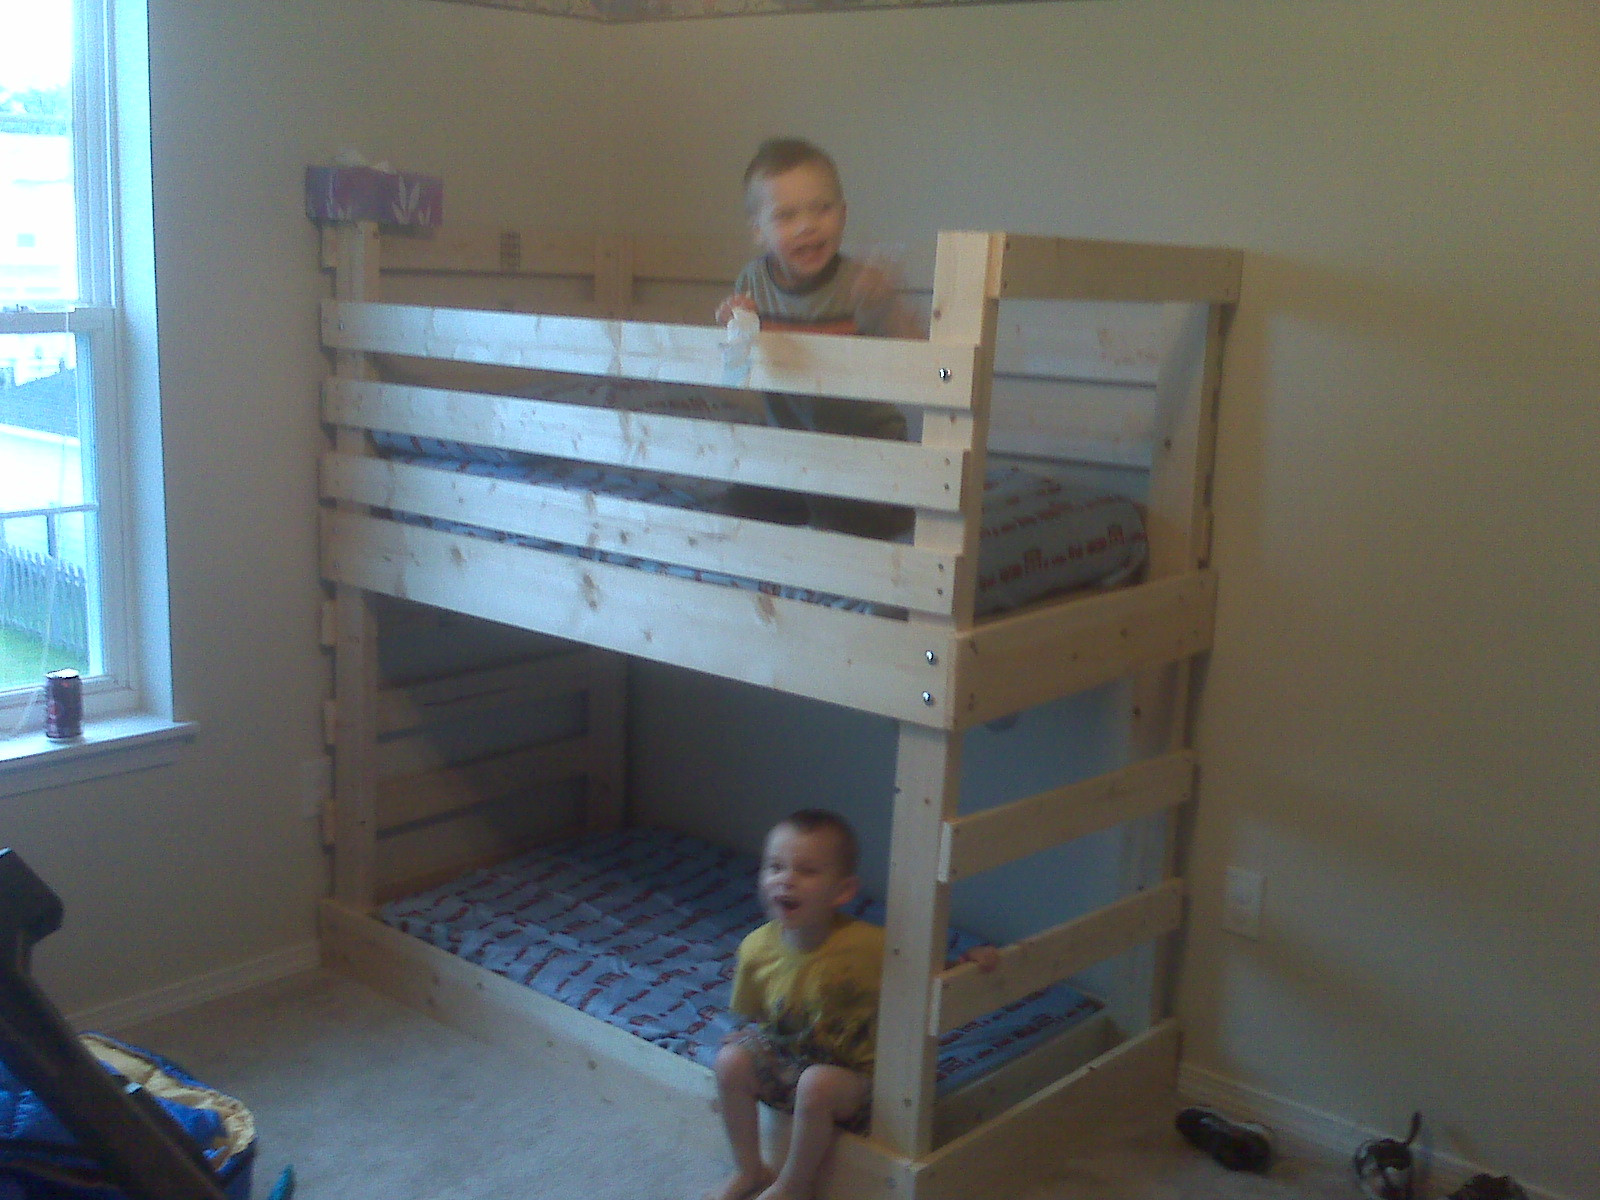 Best ideas about DIY Kids Bunk Beds . Save or Pin 25 DIY Bunk Beds with Plans Now.